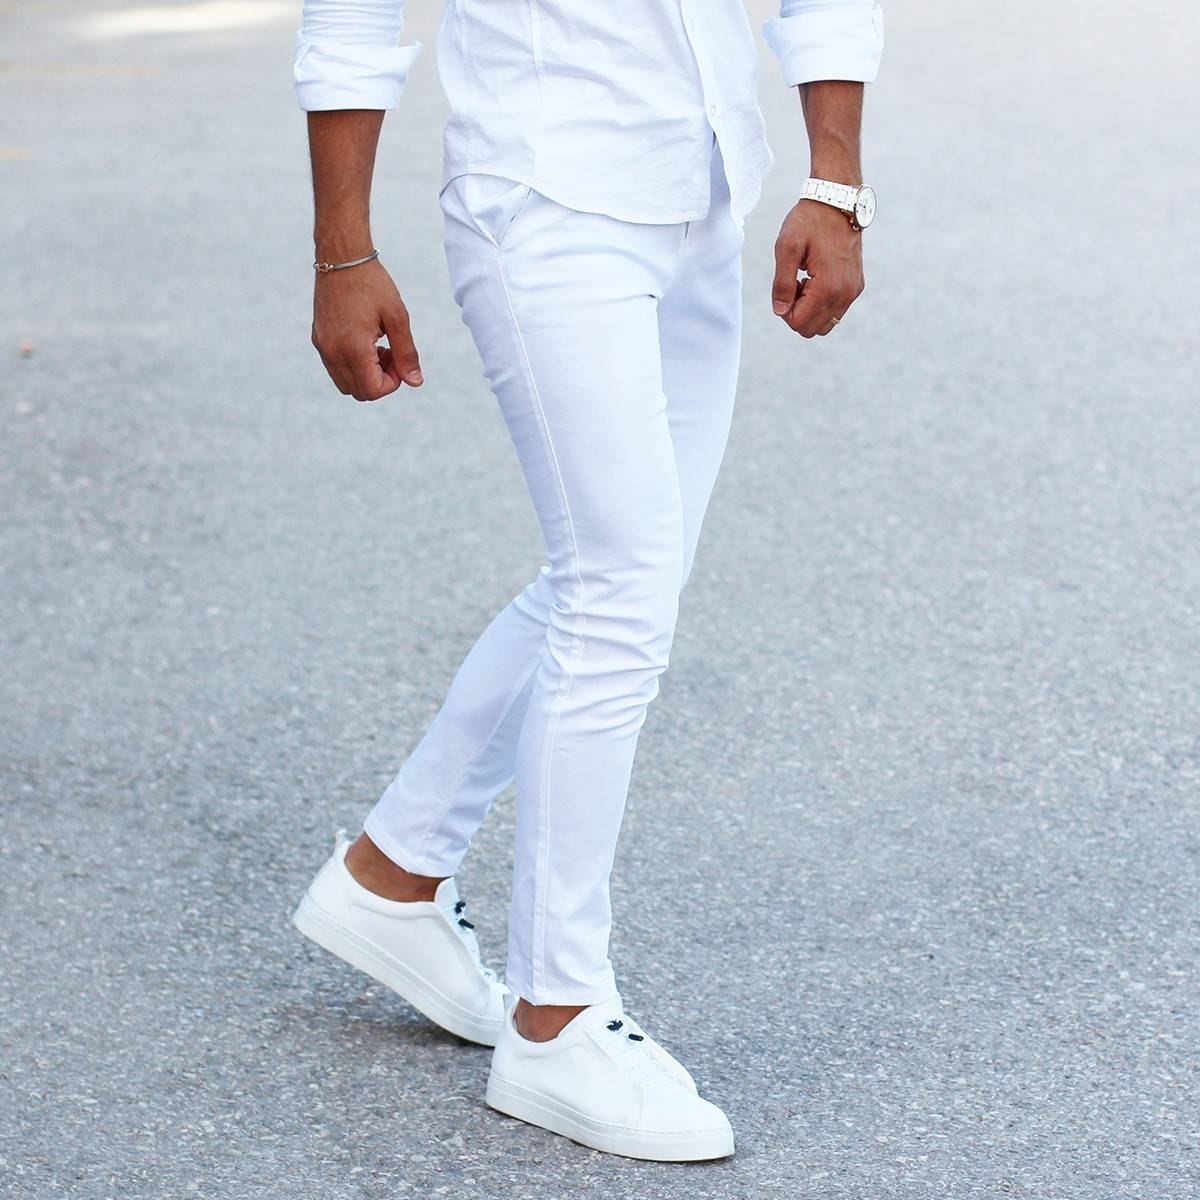 Men's Skinny Trousers Cool Edition in New White MV Jeans Collection - 2